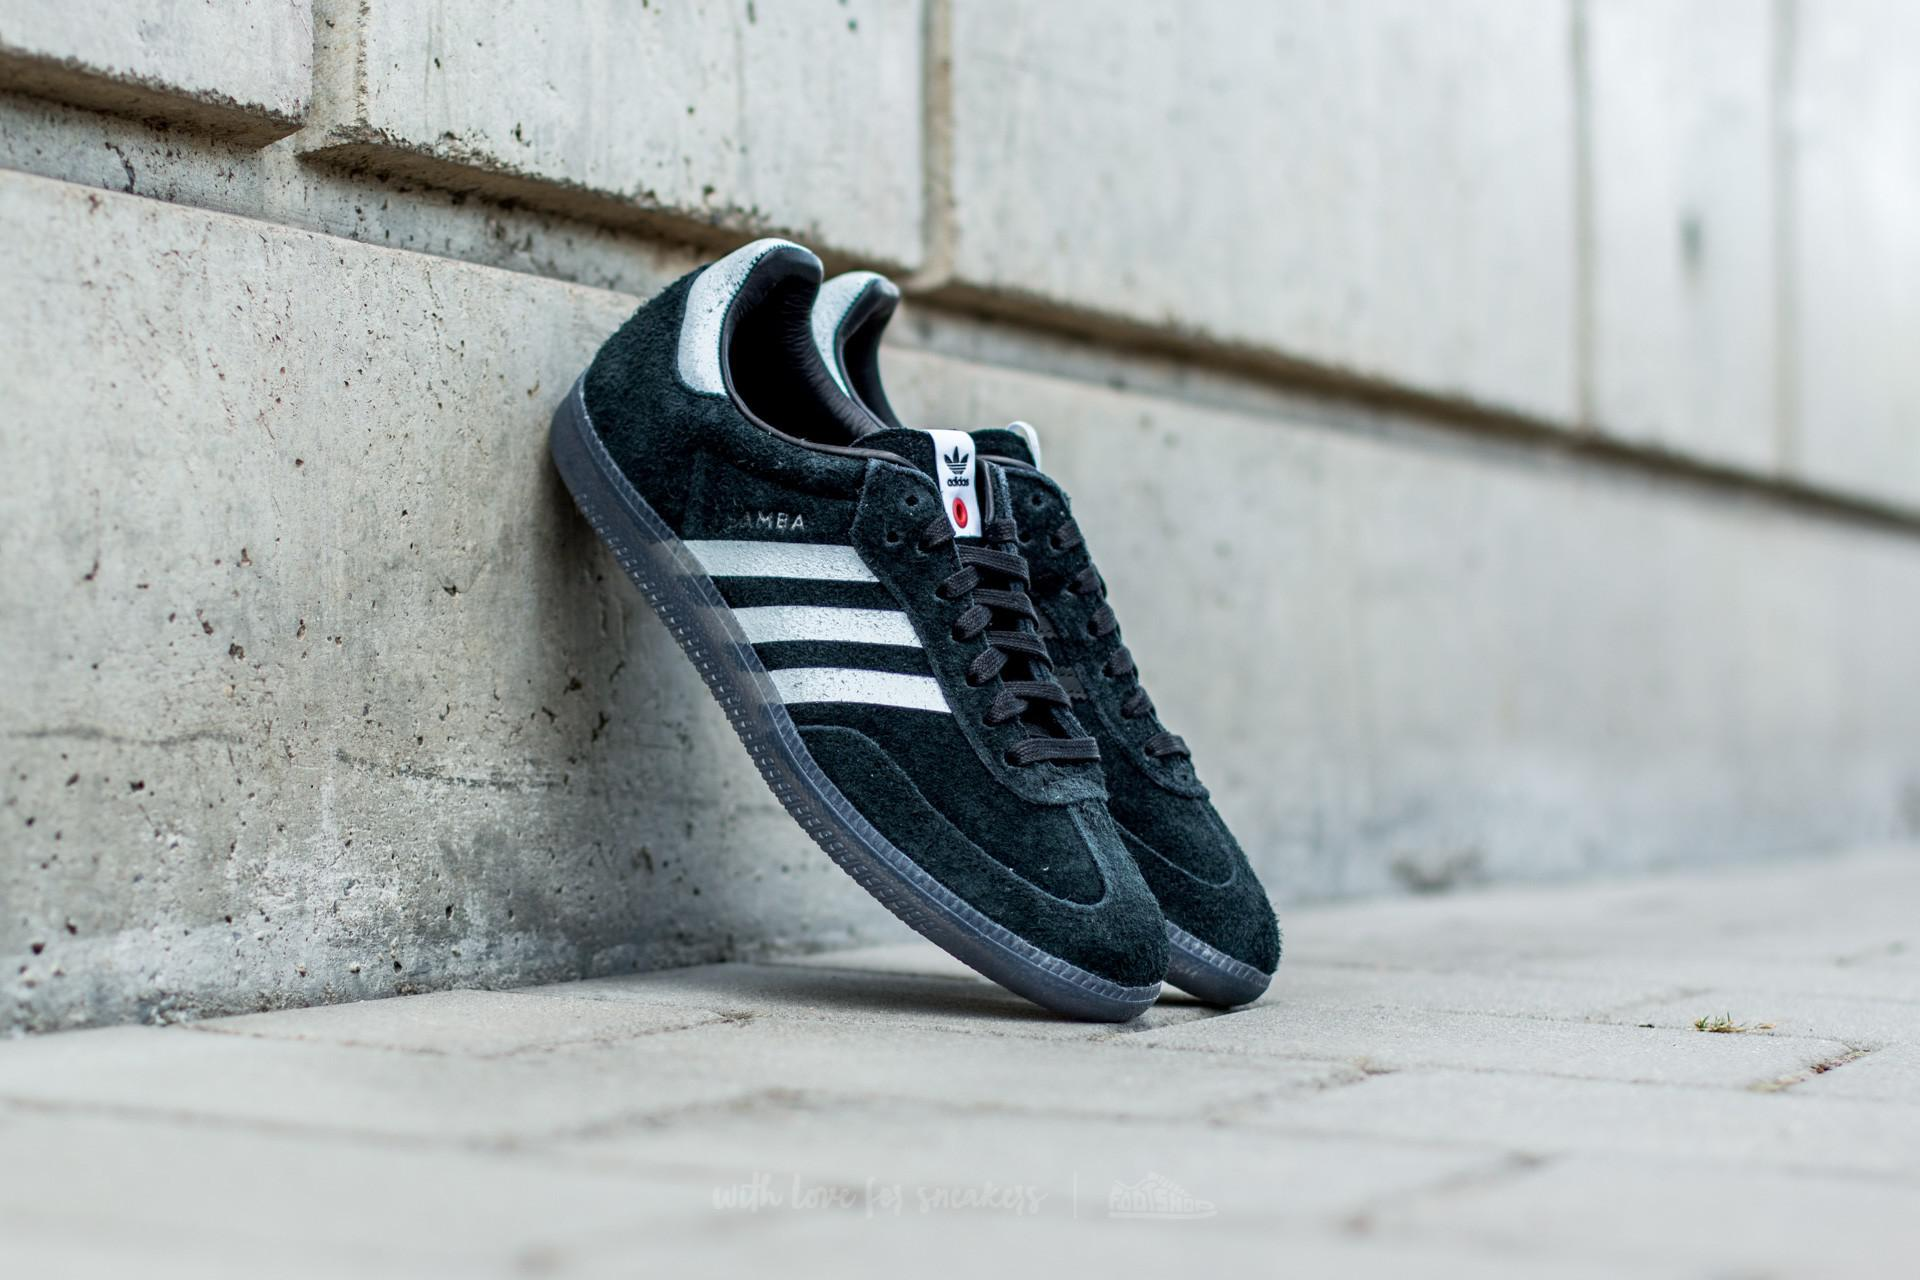 newest collection a2947 1fba1 Lyst - Footshop Adidas Samba Livestock Core Black Ftw White